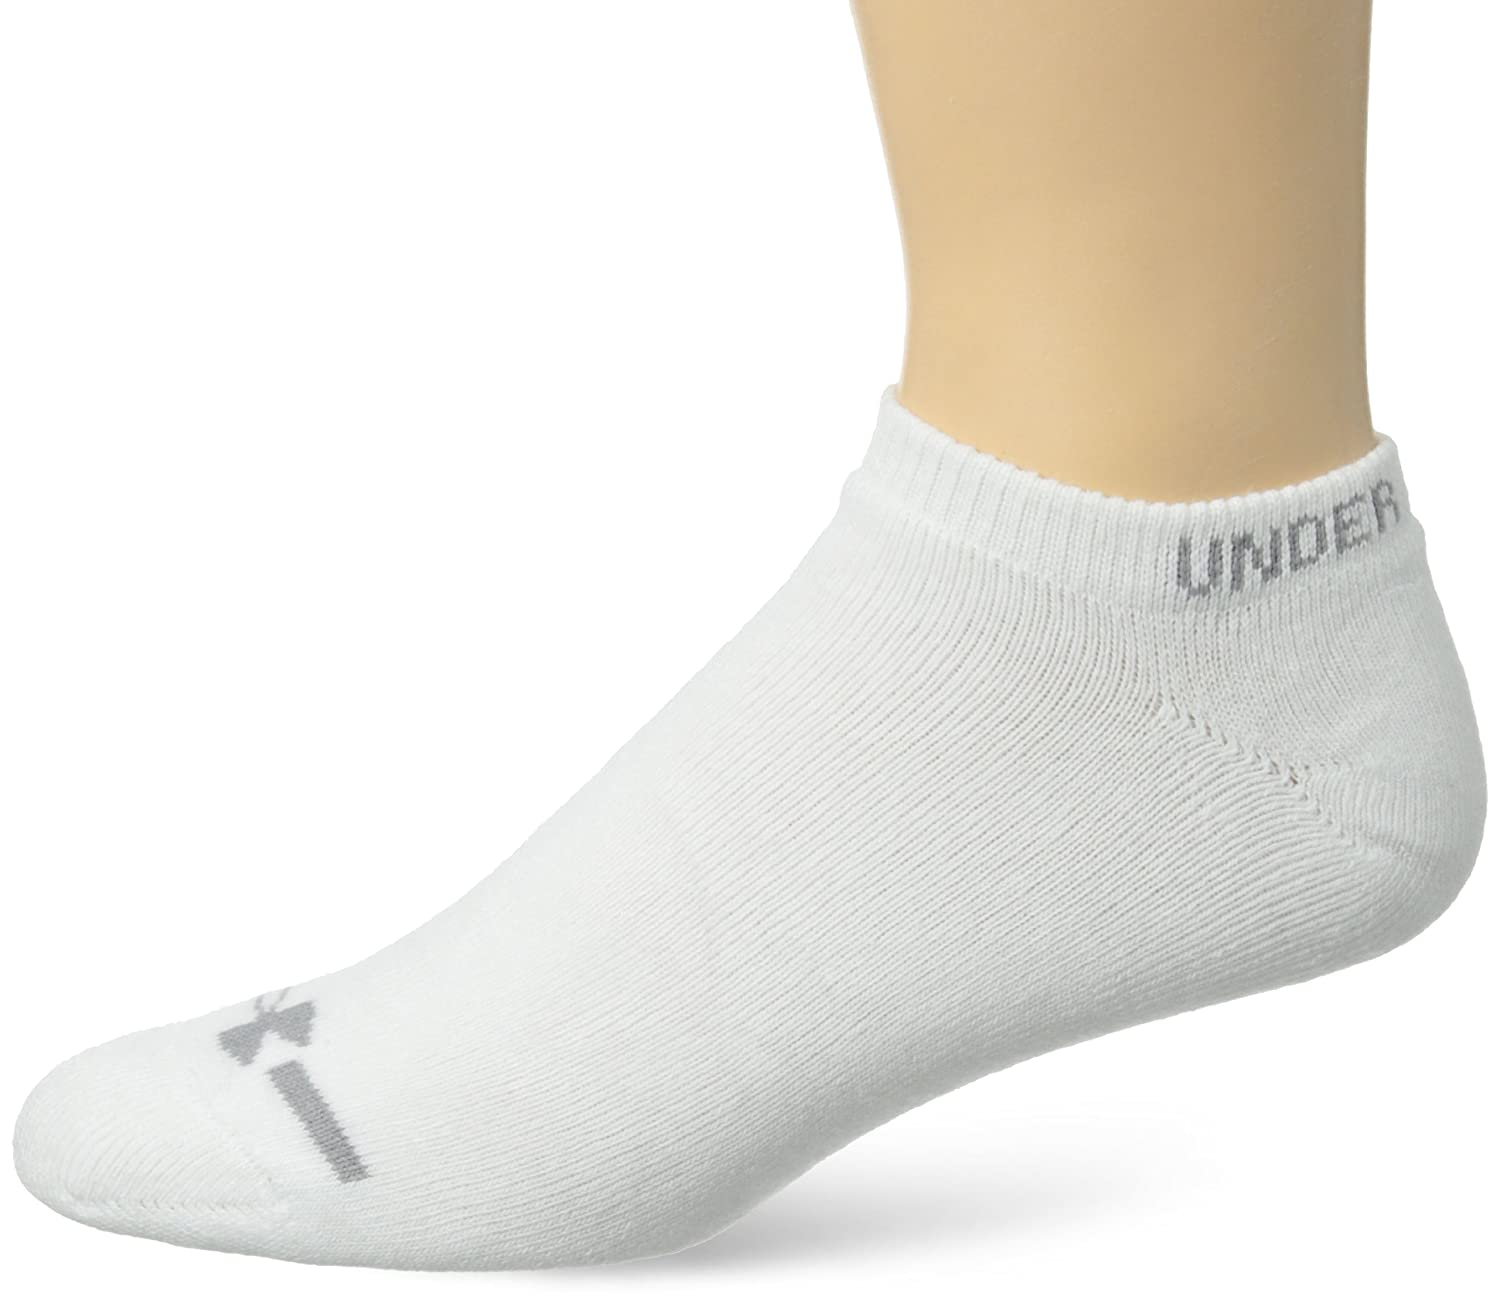 Under Armour Men's Charged Cotton No-Show Socks (Pack of 6) Under Armour Socks 1240879